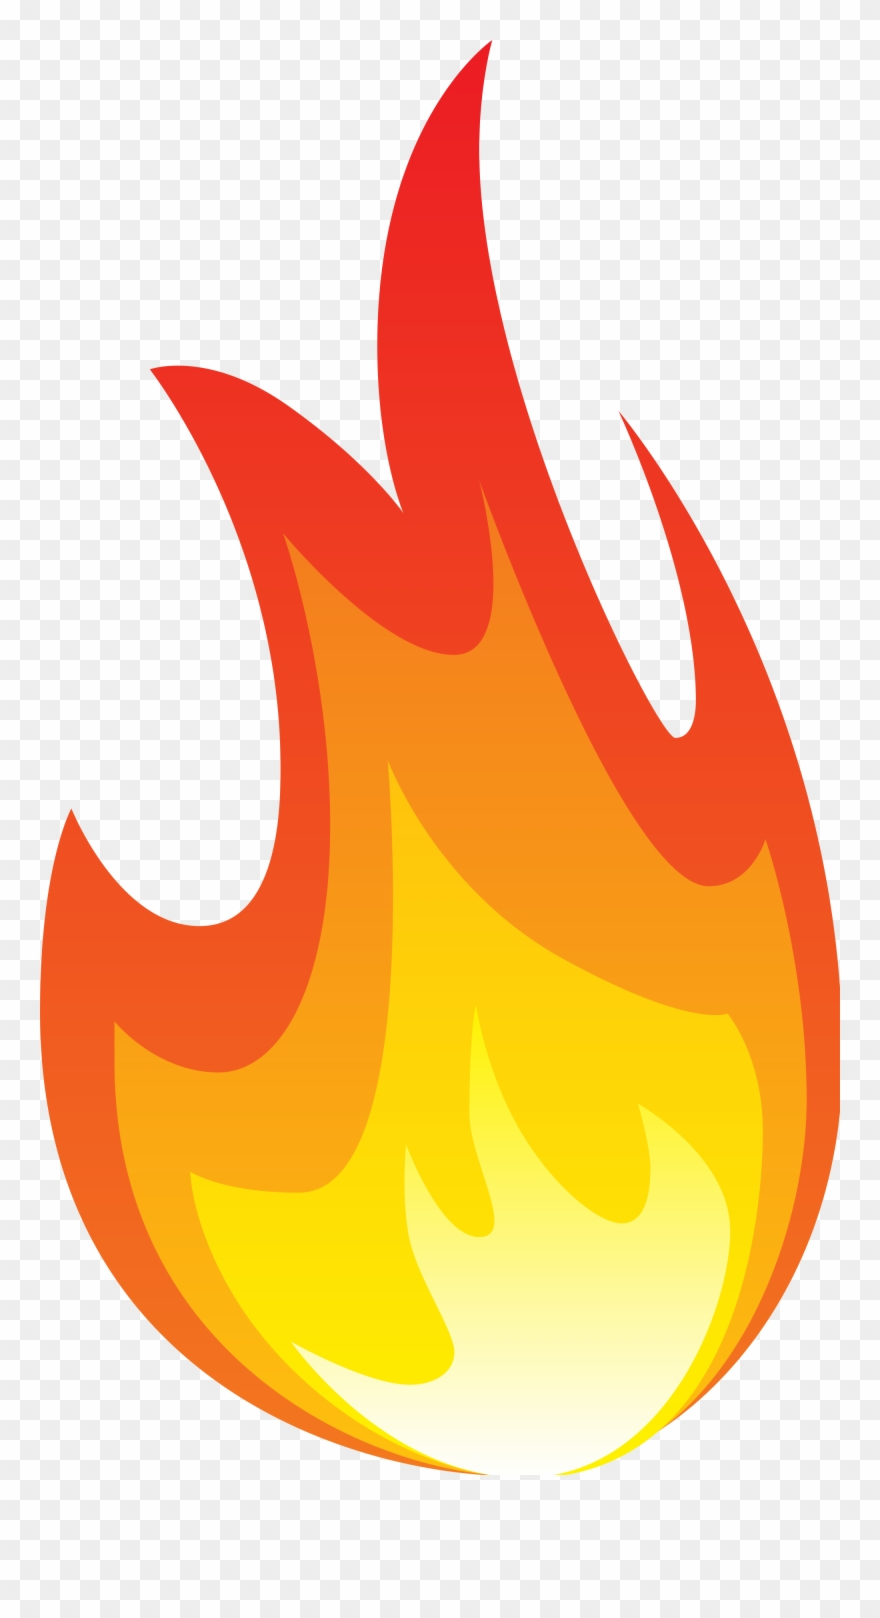 Fire Clip Rendered Transparent Clipart Free Download.